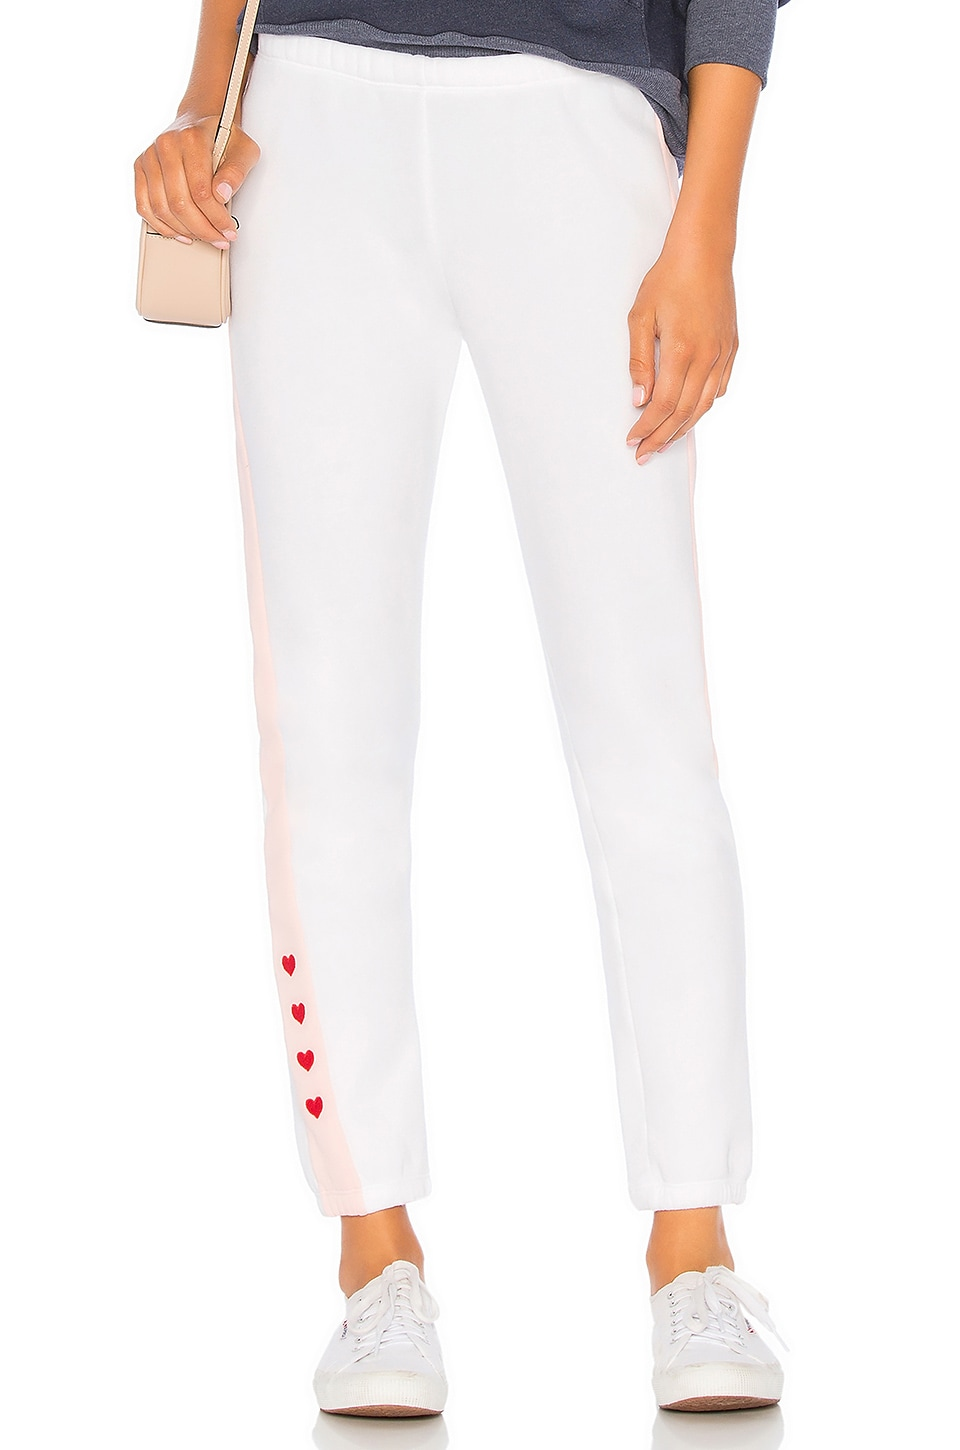 Wildfox Couture Love Track Sweatpant in Clean White & Romantic